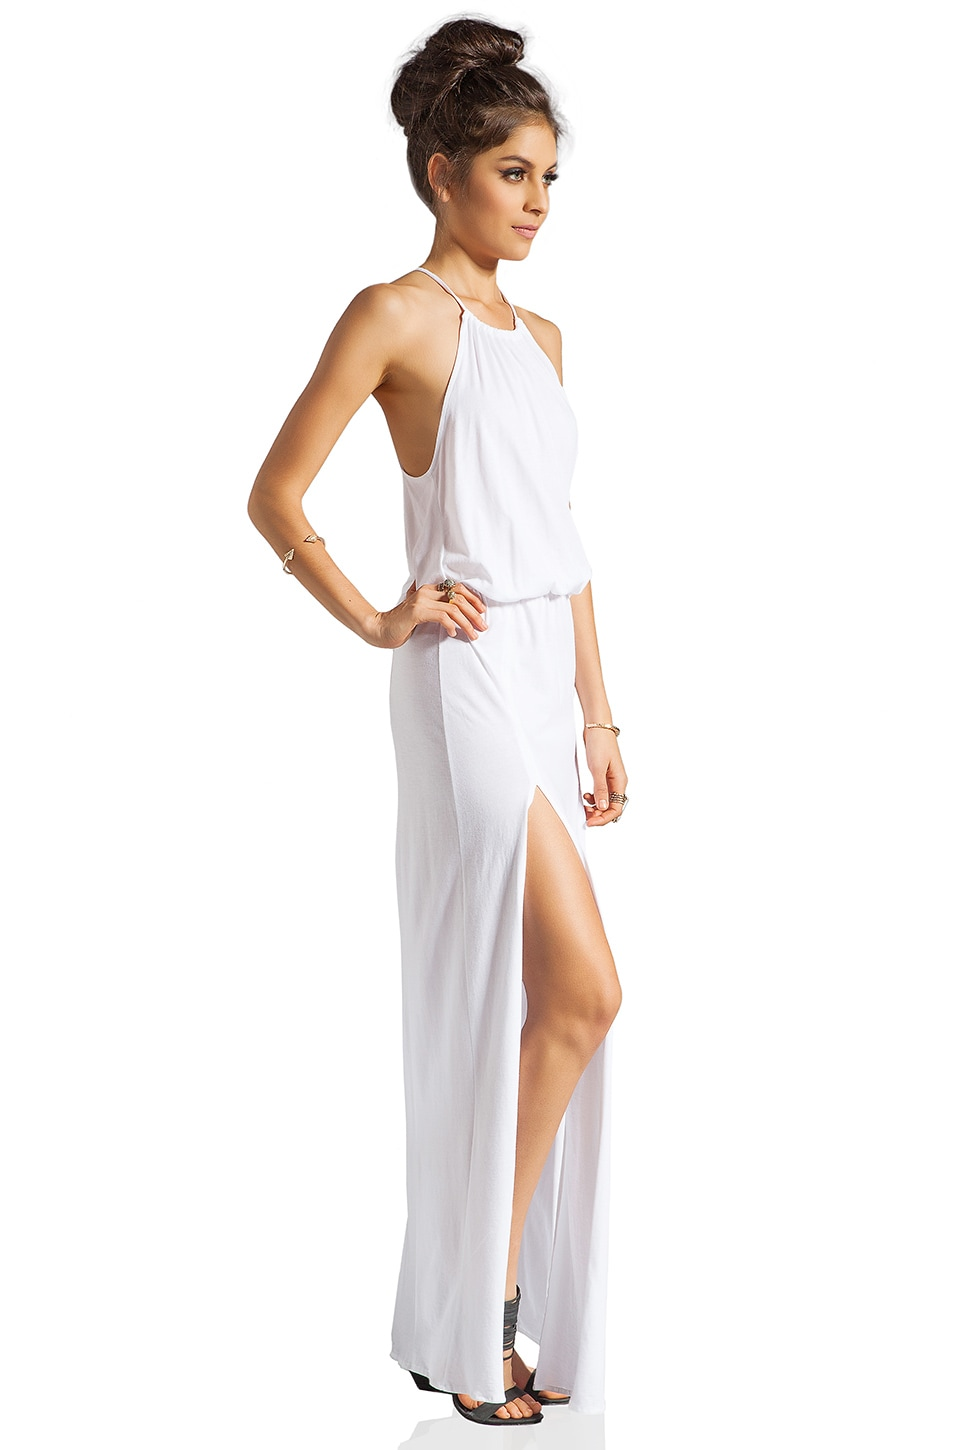 Blue Life Two Slit Halter Dress in White